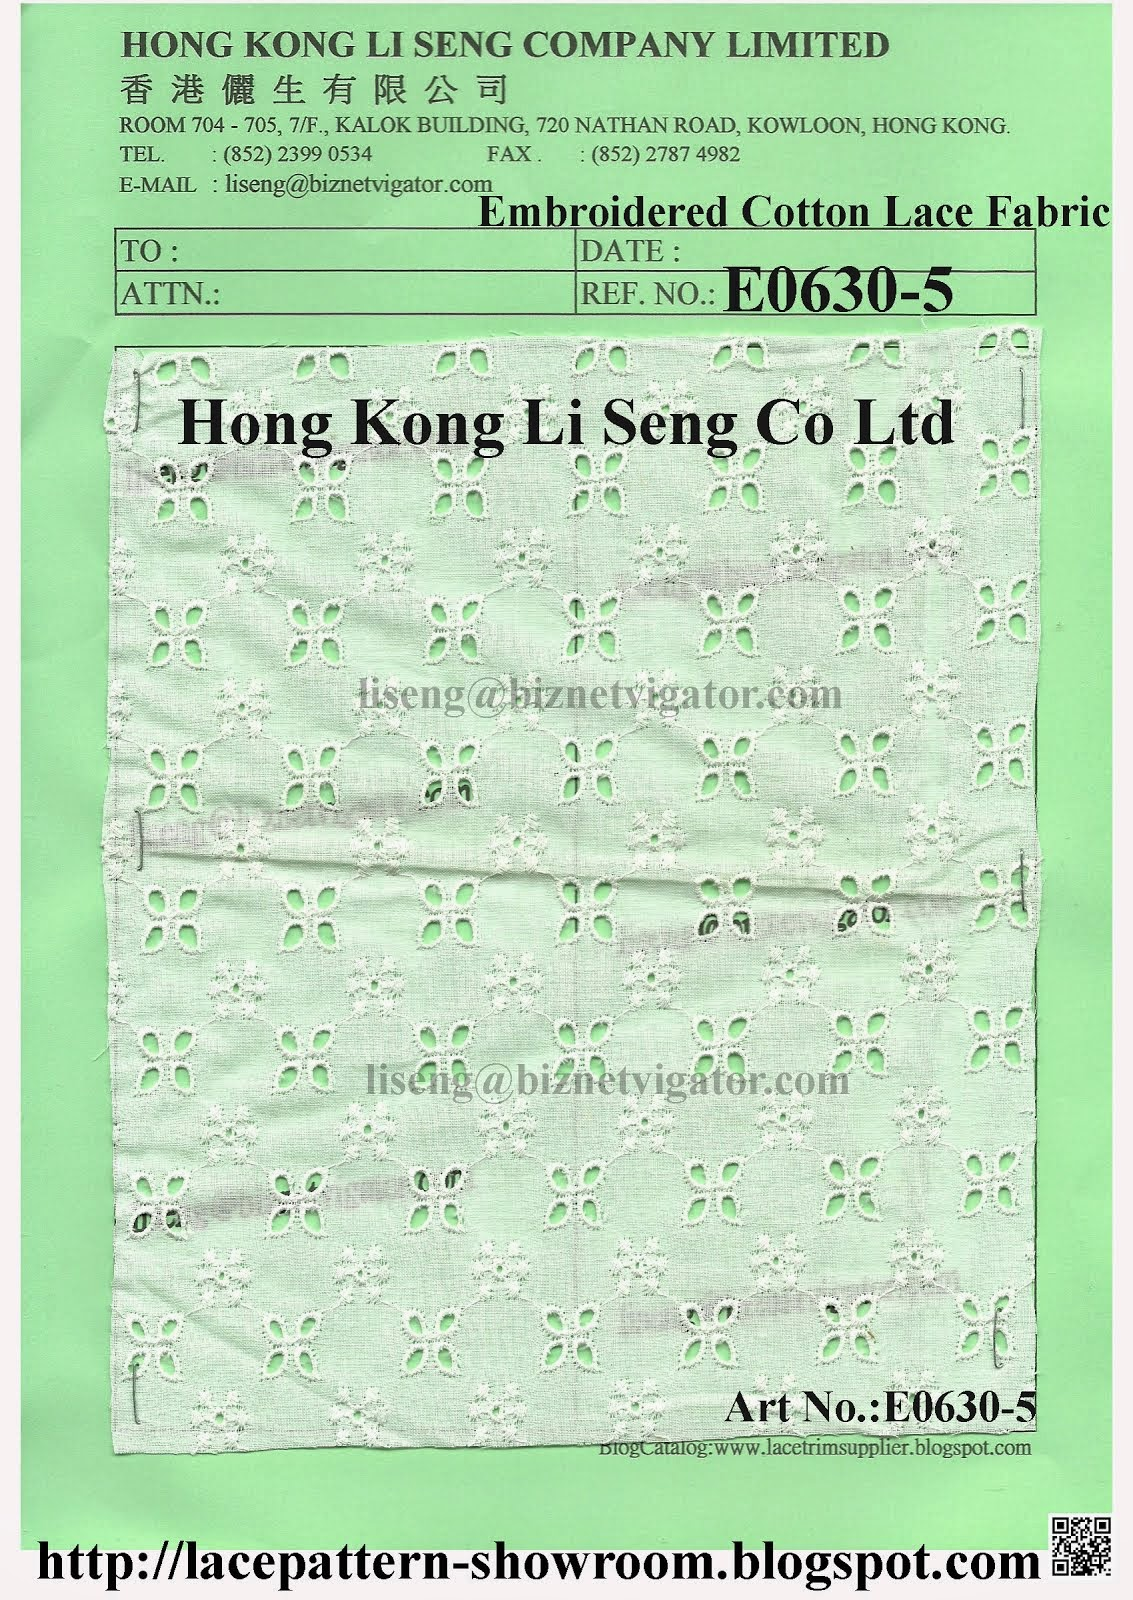 Embroidered Cotton Lace Fabric Manufacturer Wholesaler Supplier - Hong Kong Li Seng Co Ltd